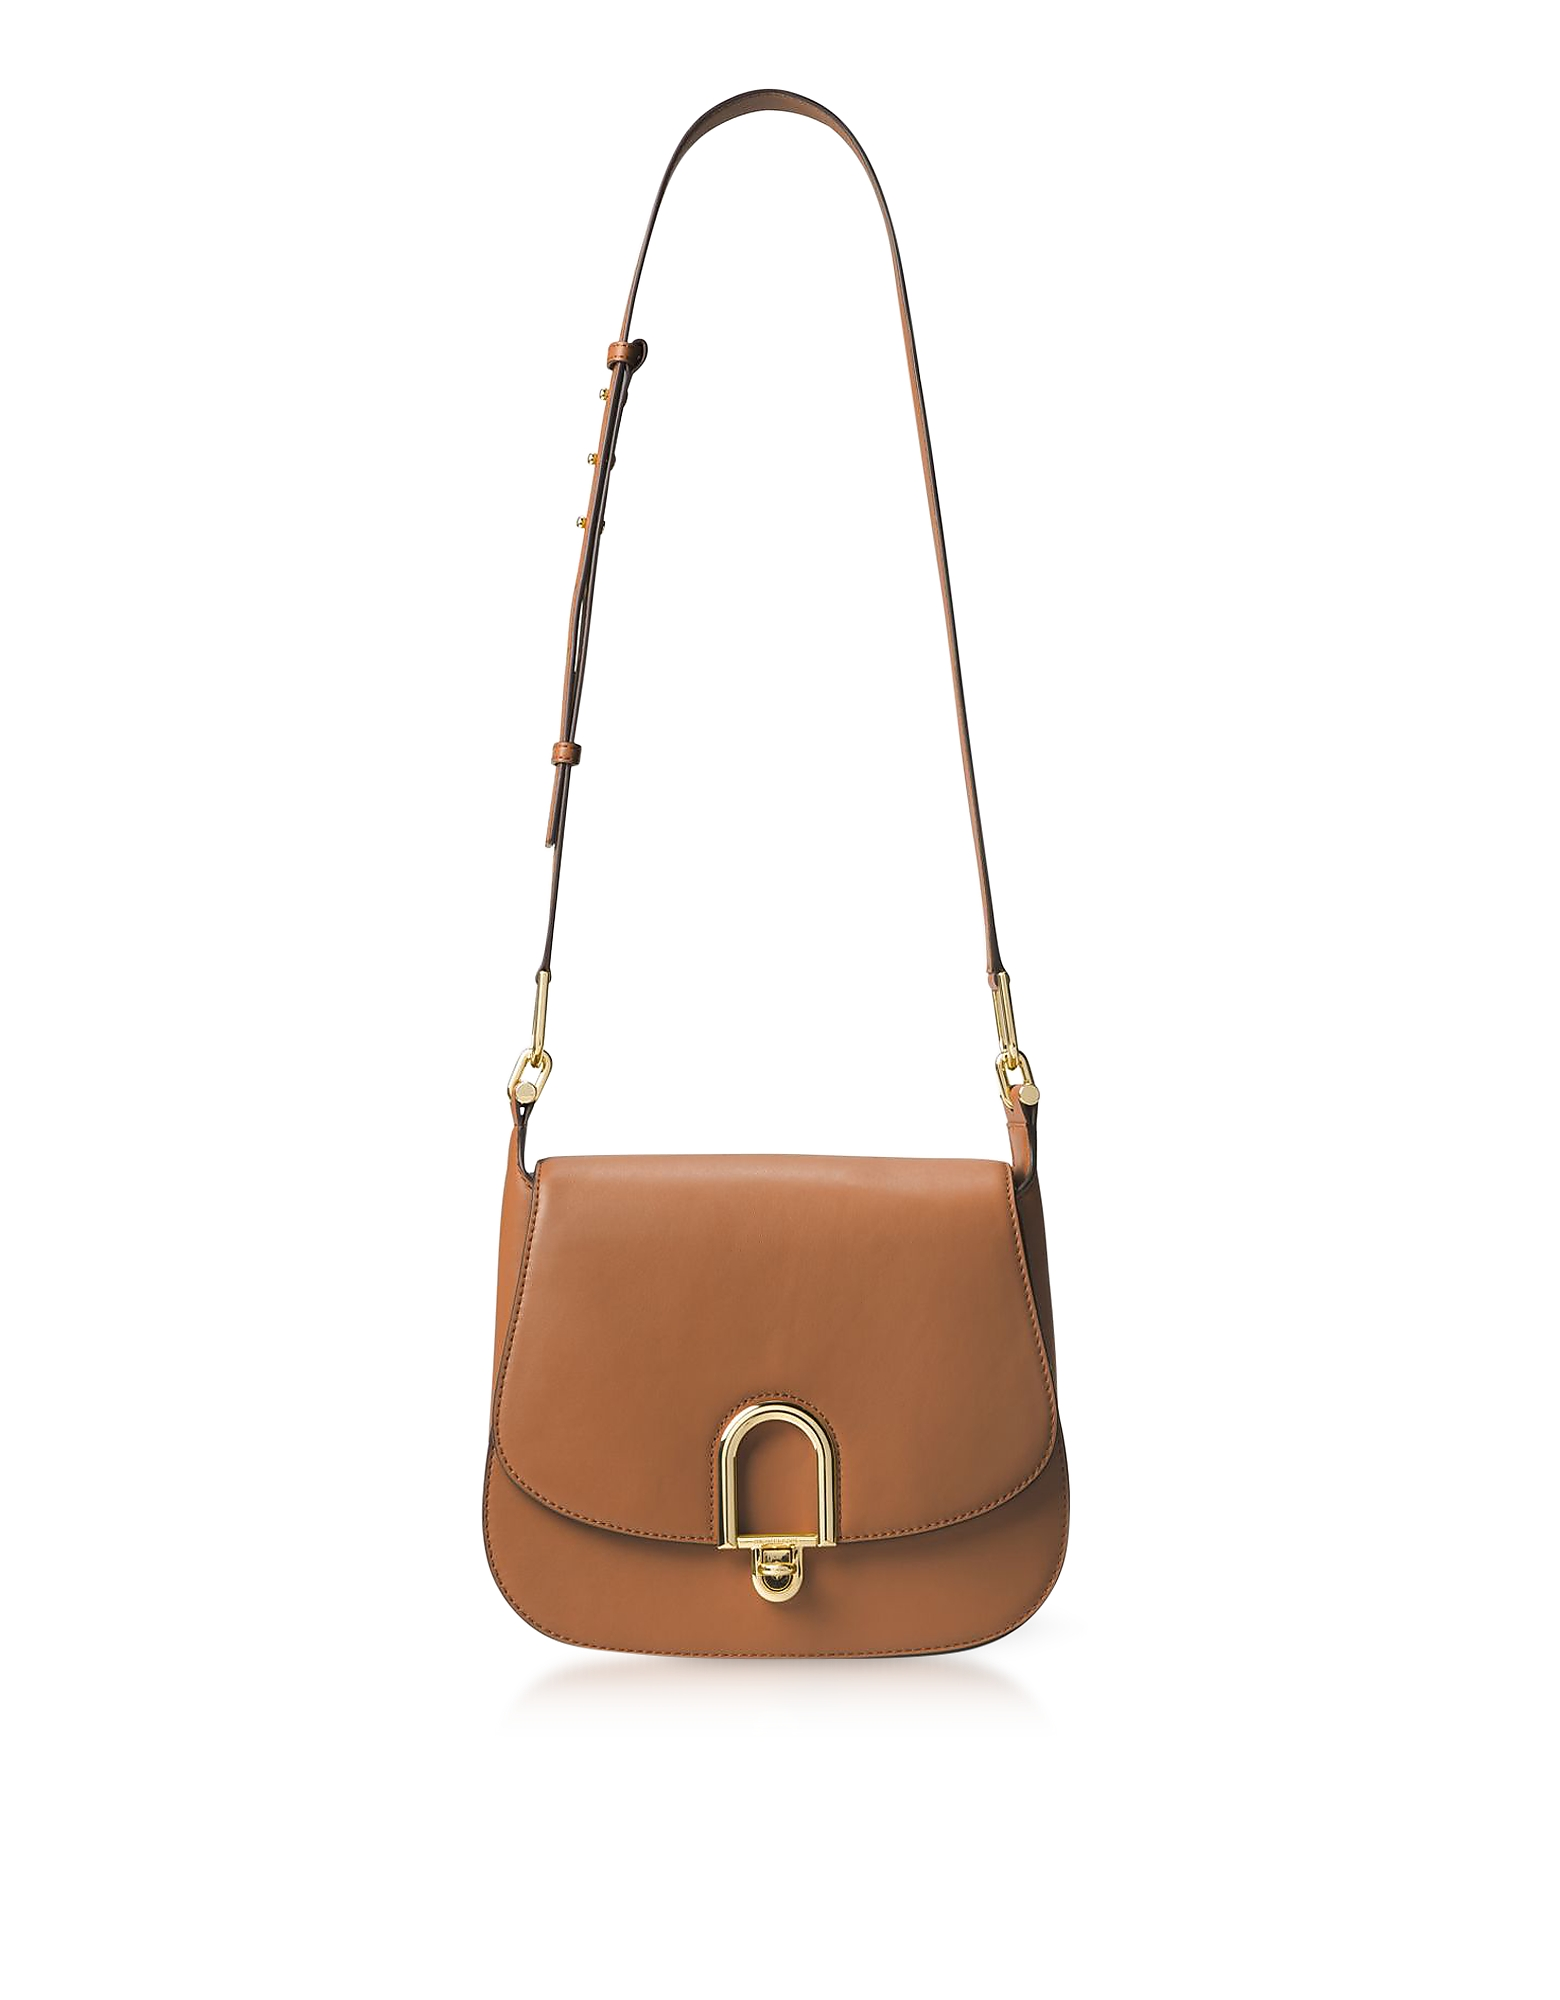 Michael Kors Handbags, Delfina Large Acorn Leather Saddle Bag